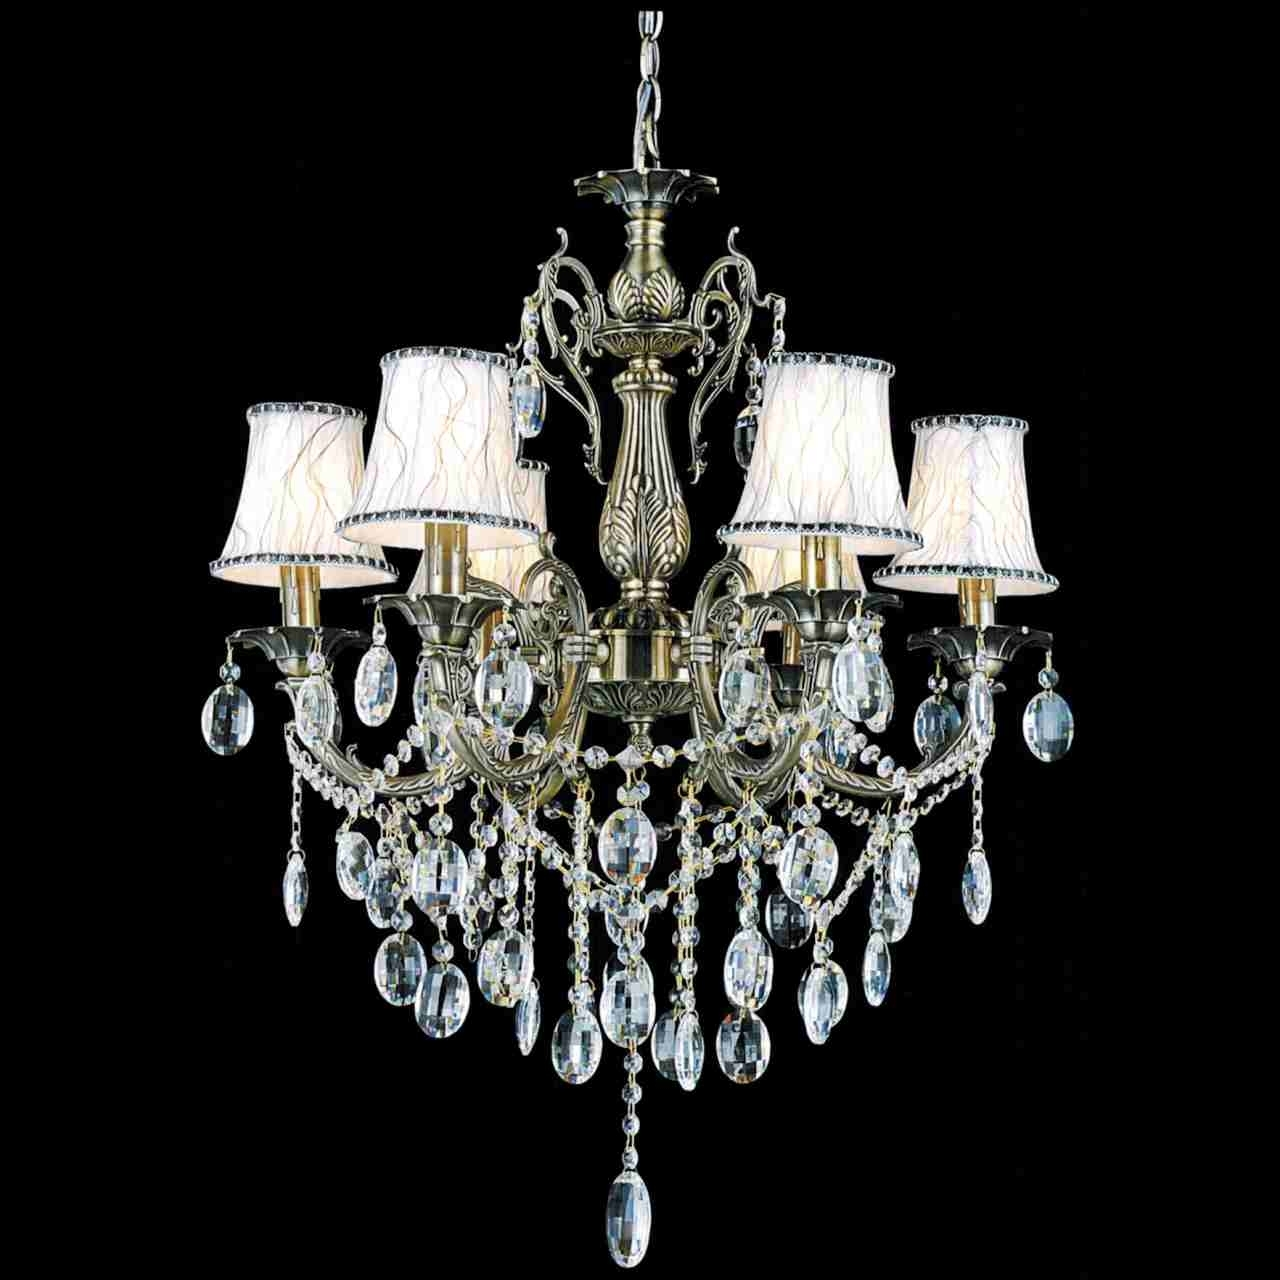 Chandelier With Shades And Crystals Regarding 2018 Brizzo Lighting Stores (View 7 of 15)